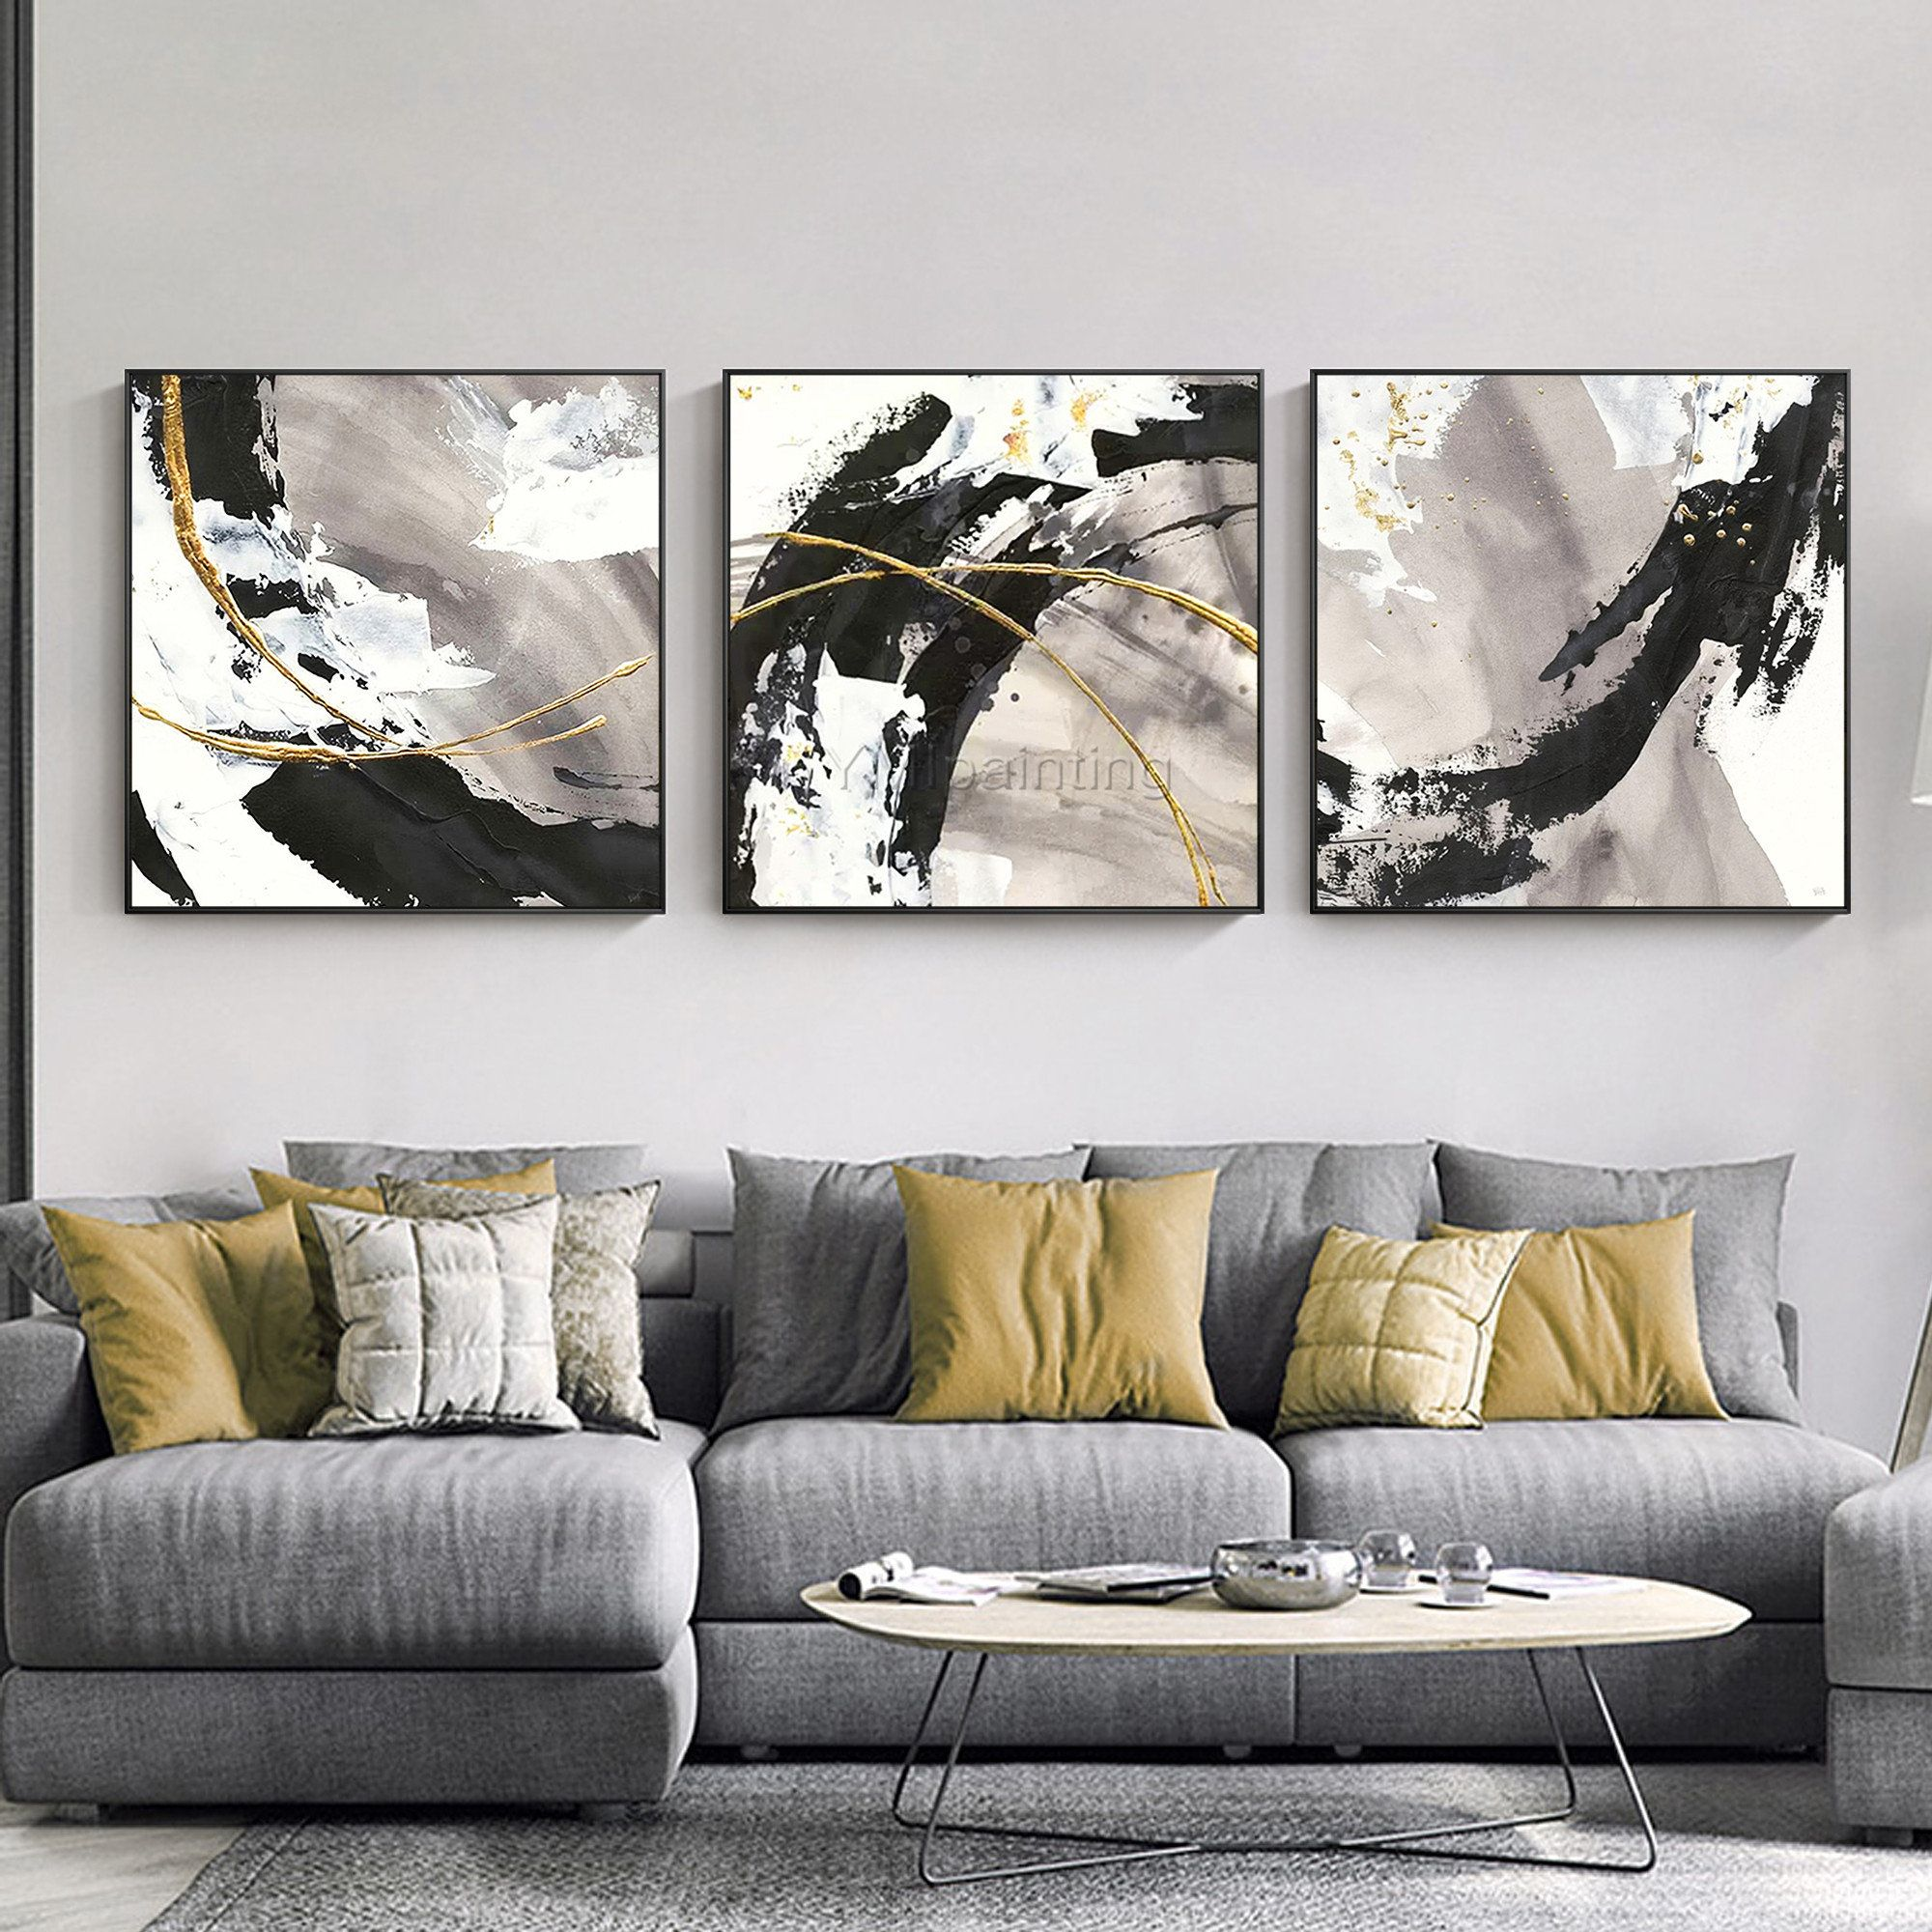 3 Pieces Gold Art Abstract Paintings On Canvas Set Of 3 Wall Etsy In 2020 Wall Art Pictures Canvas Art Wall Decor Multi Canvas Painting